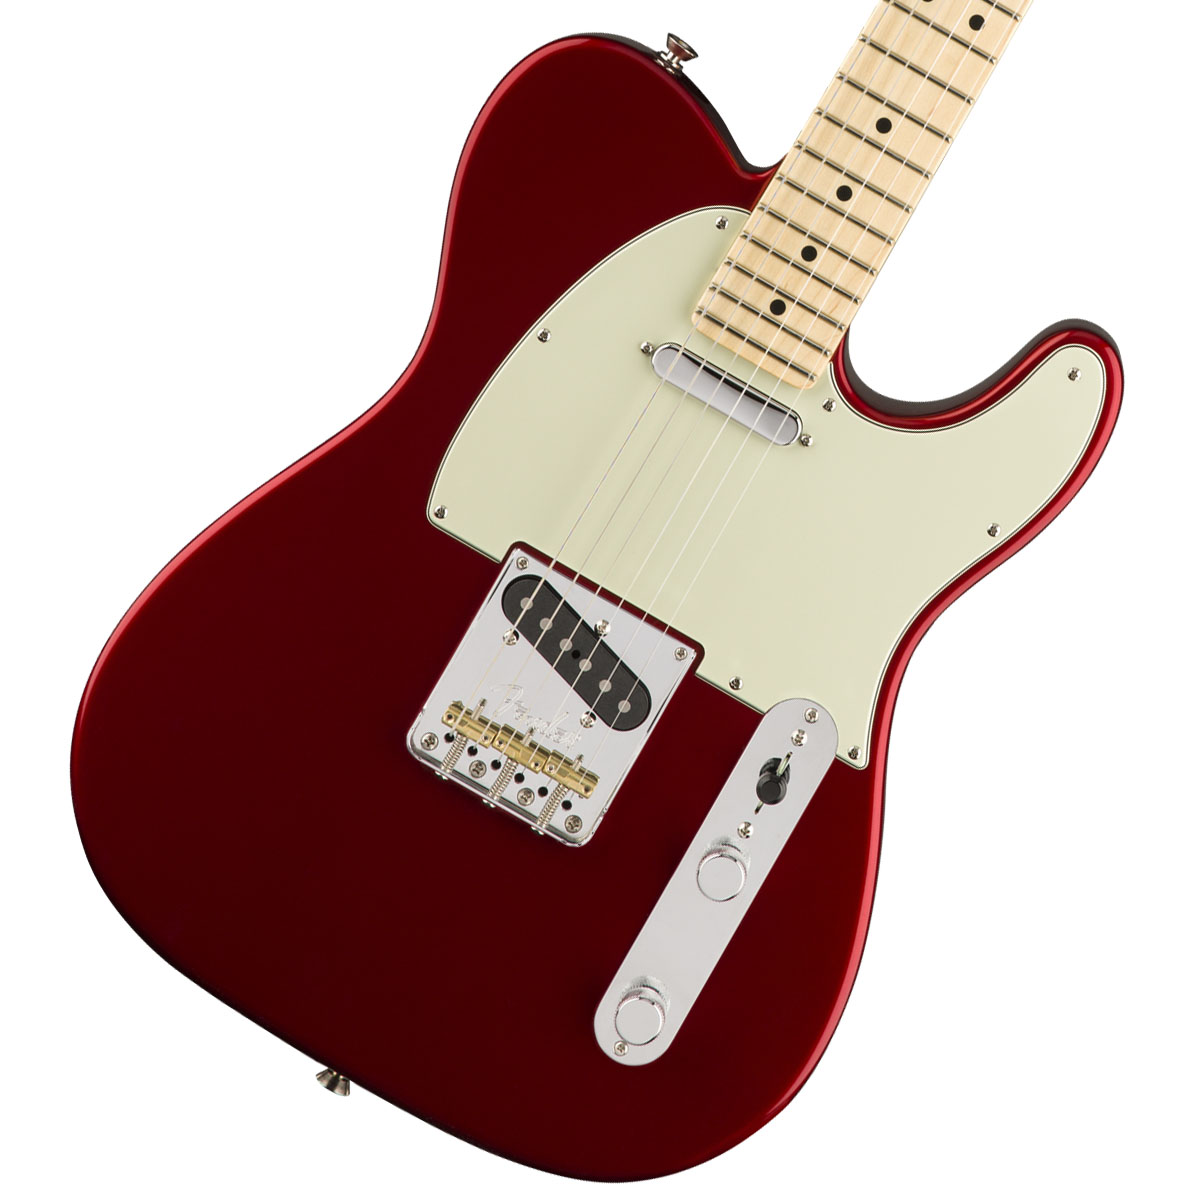 Fender USA / American Professional Telecaster Maple Fingerboard Candy Apple Red 【お取り寄せ商品】《カスタムショップのお手入れ用品を進呈/+671038200》